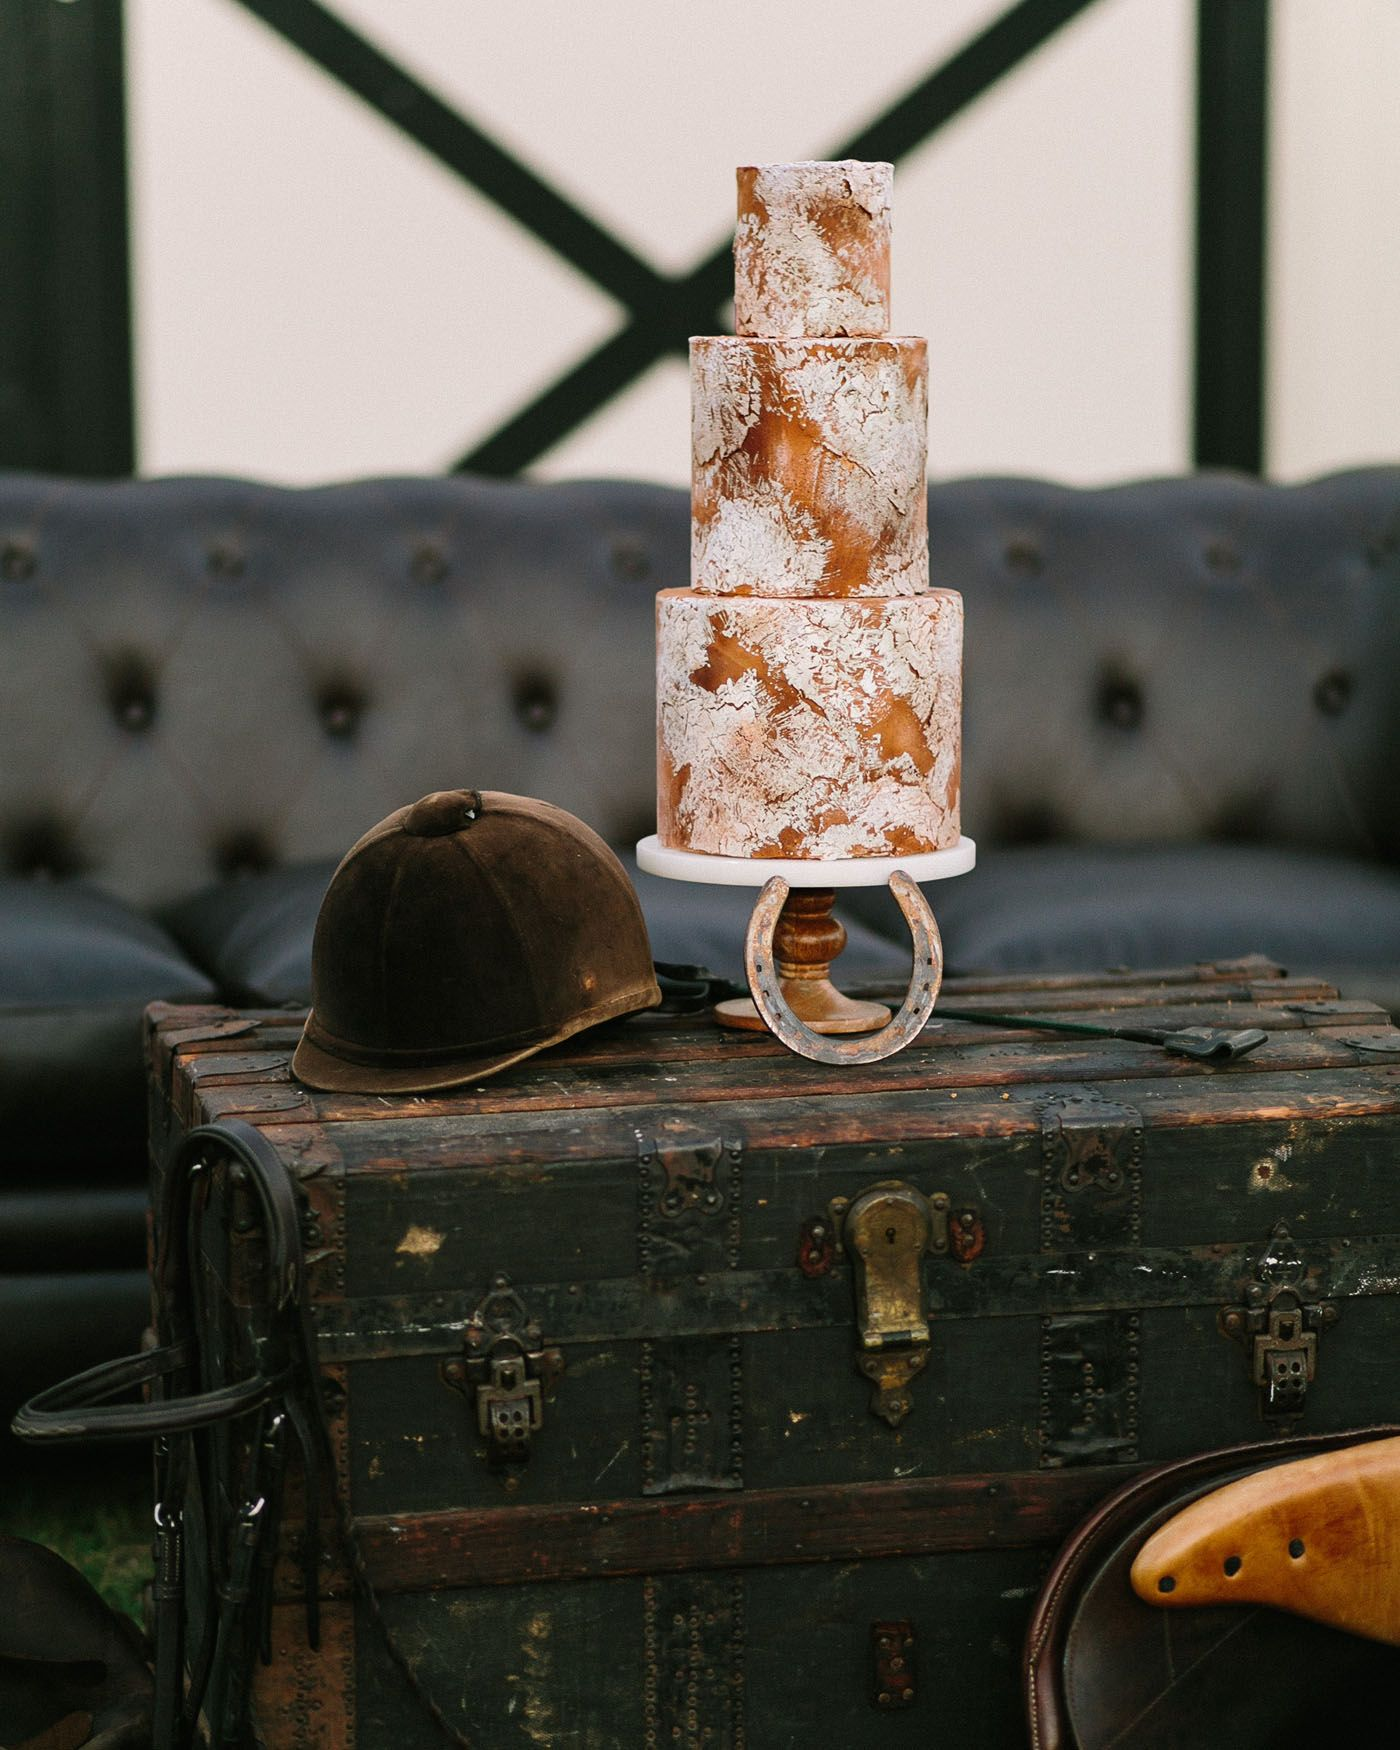 fae0a55cac Rustic Equestrian Inspired Wedding Cake with Copper Details